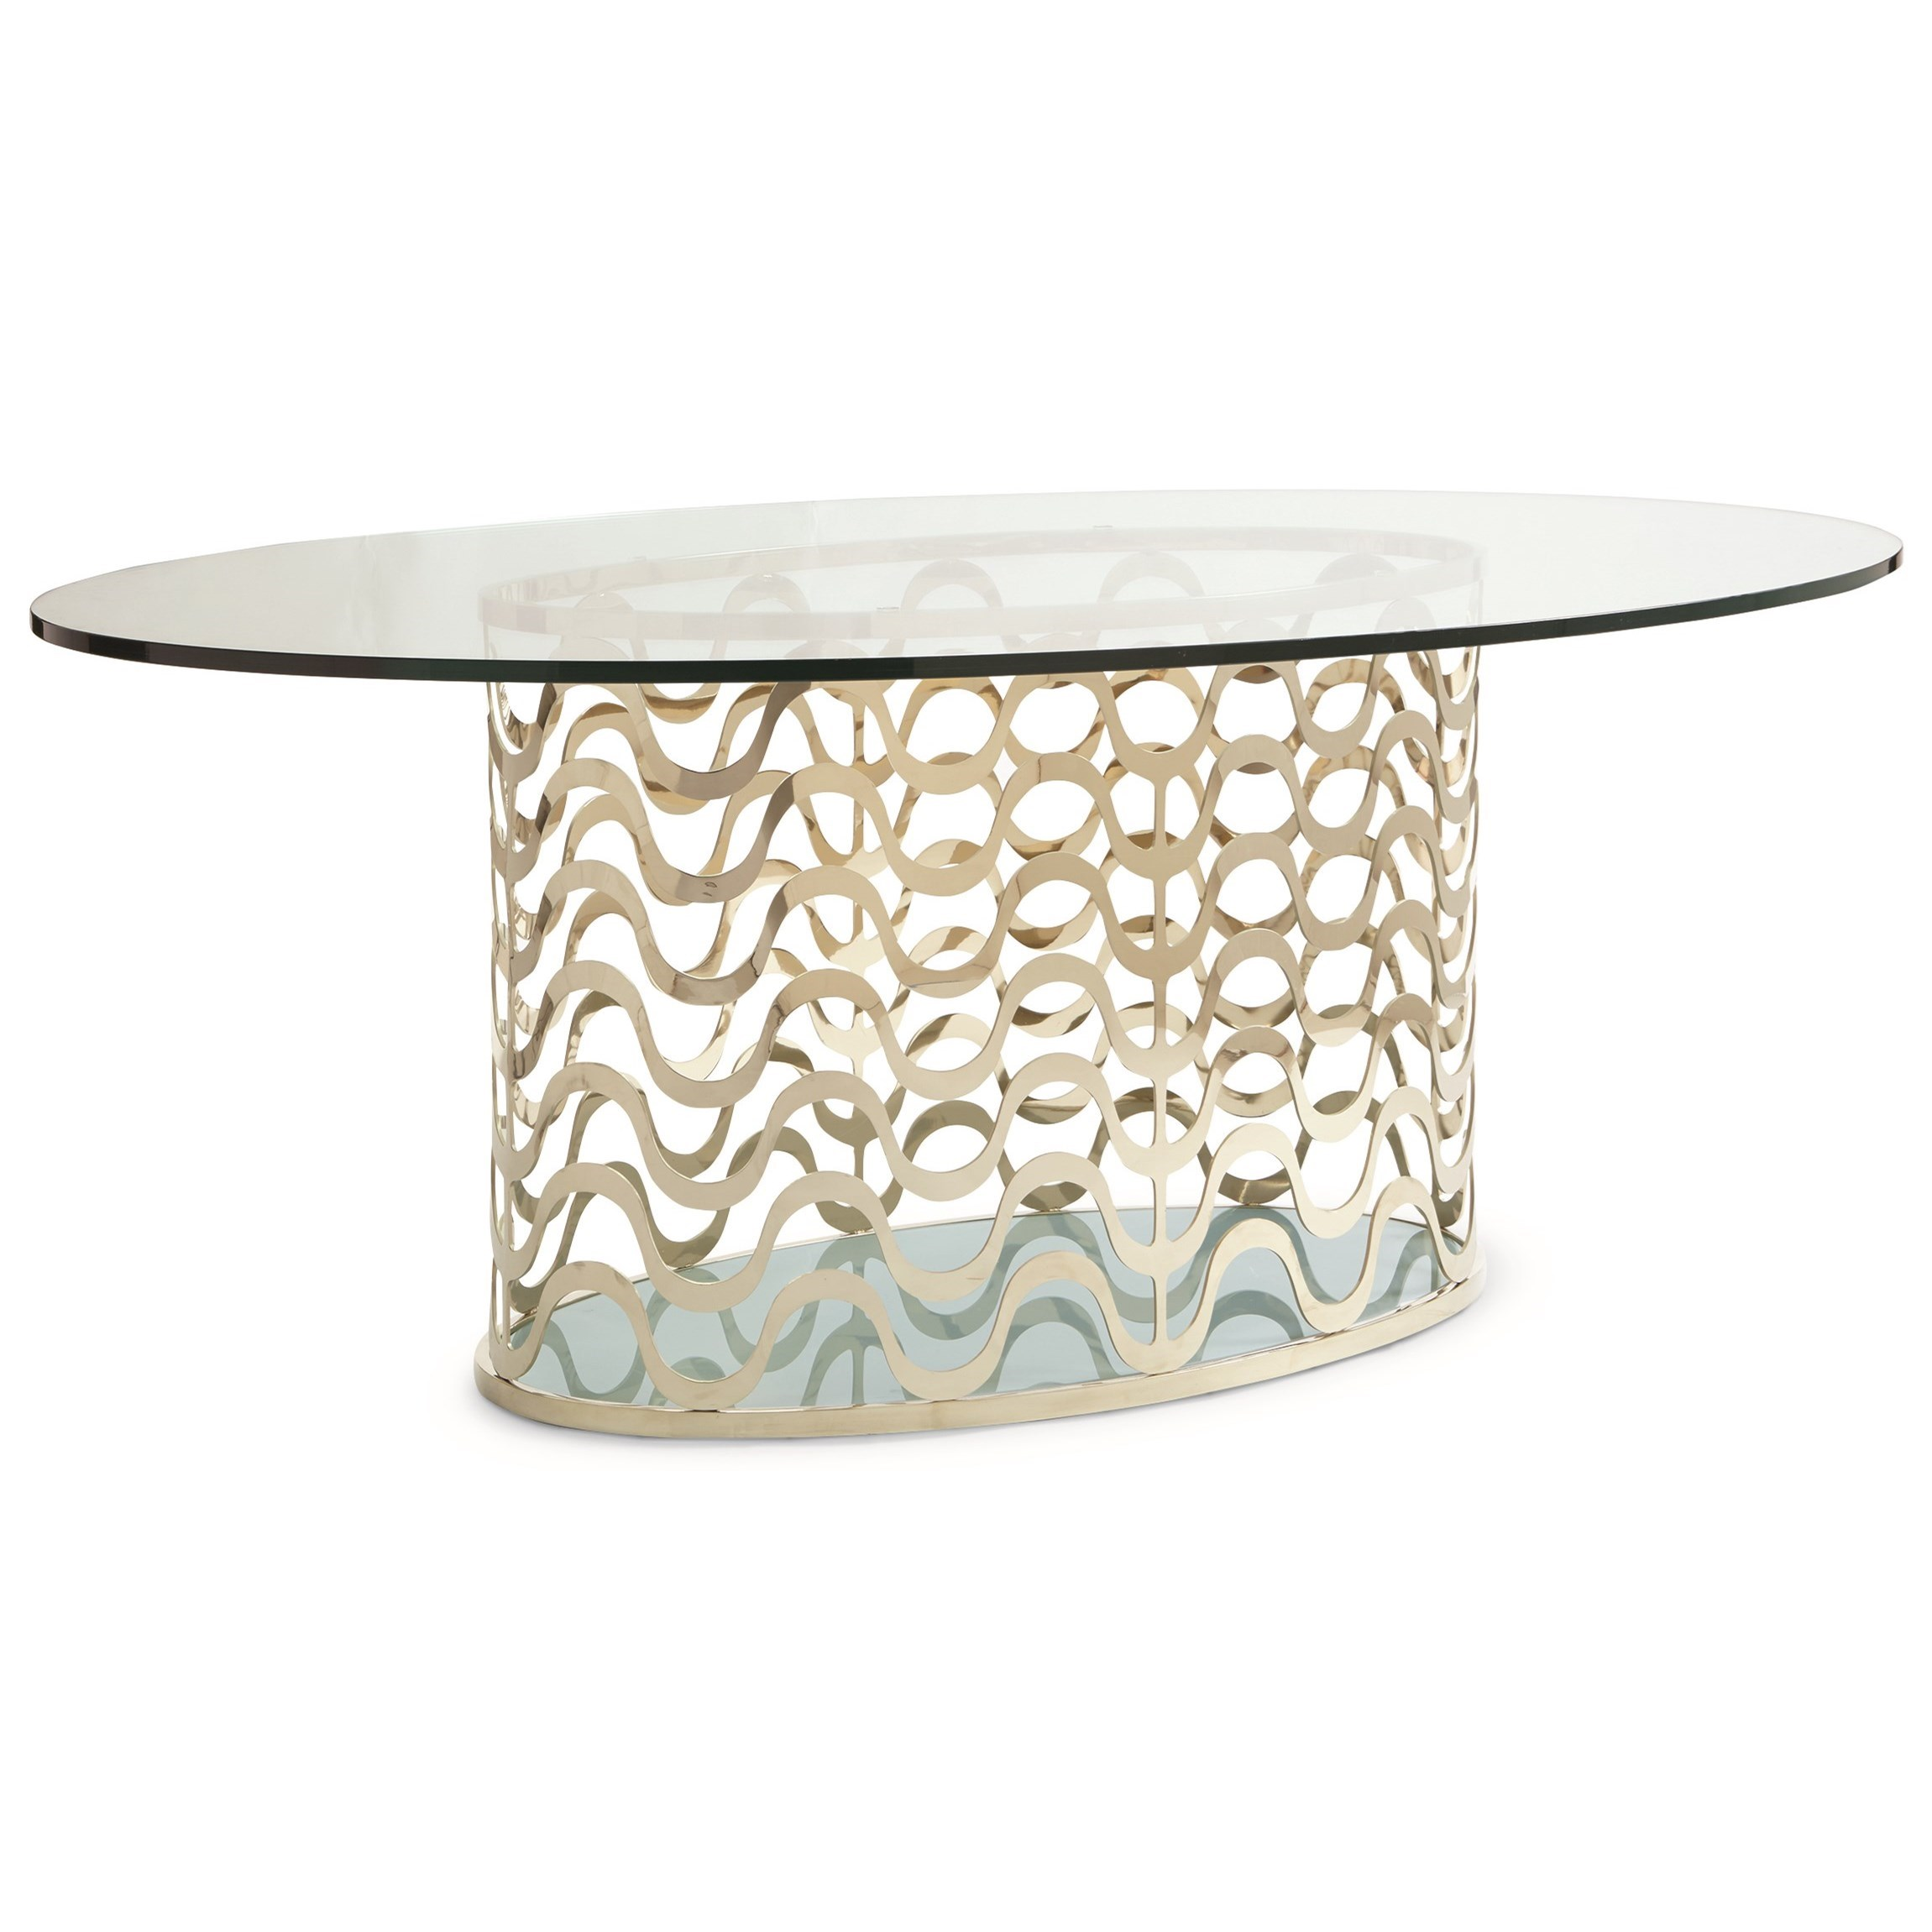 Caracole Classic Contemporary Wavelength Dining Table - Item Number: CLA-416-203